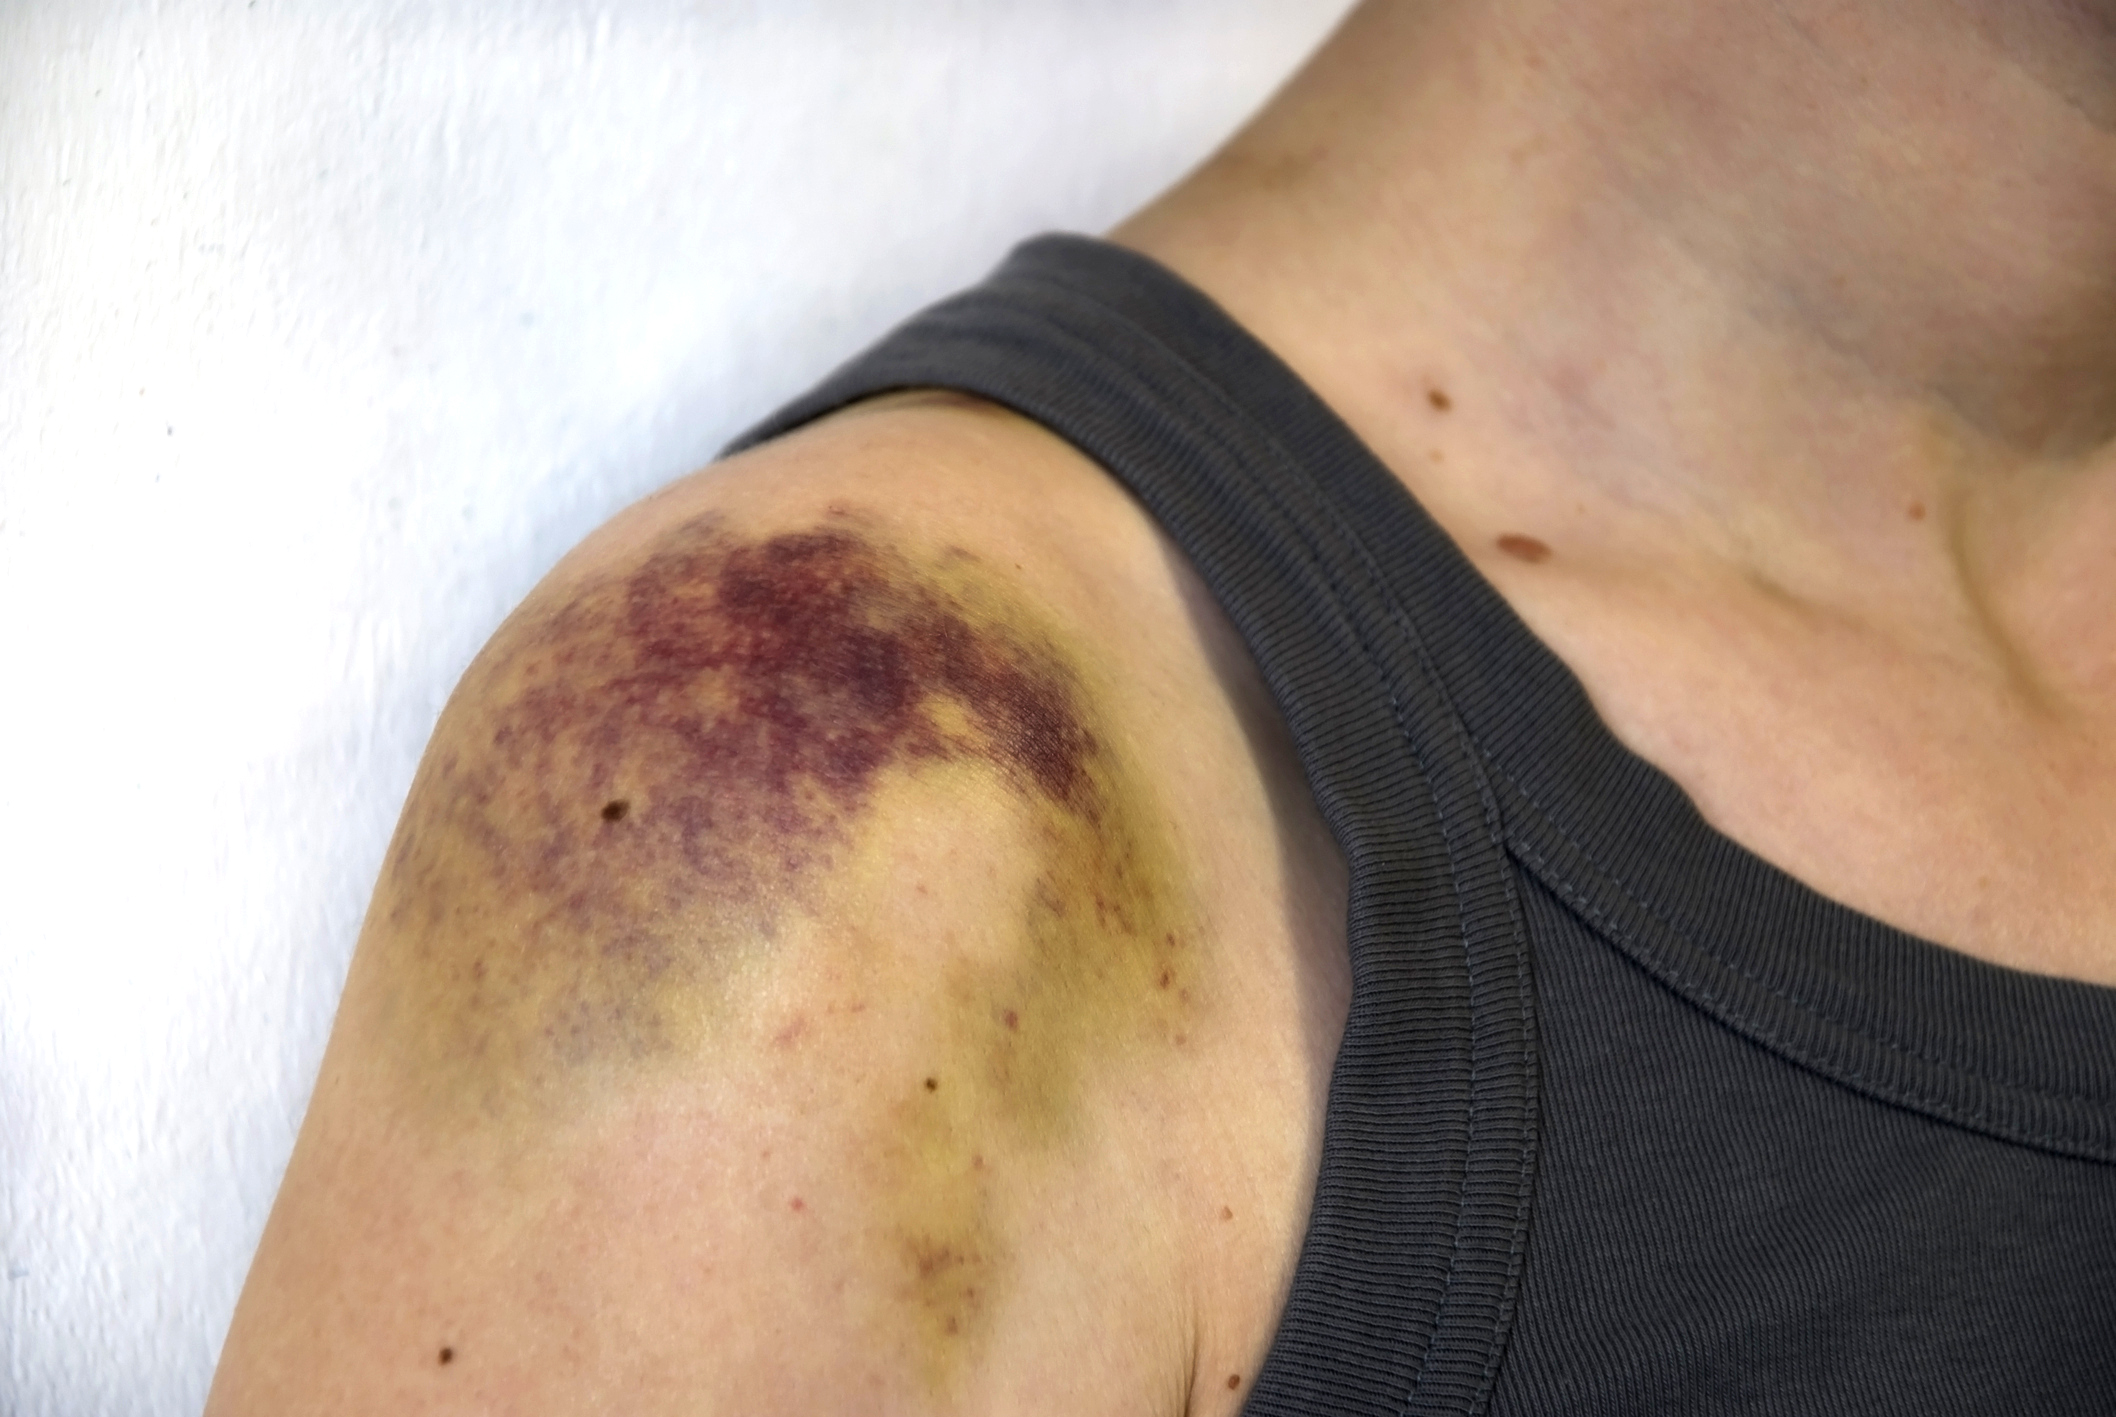 A bruise is ... Treatment and symptoms of injury